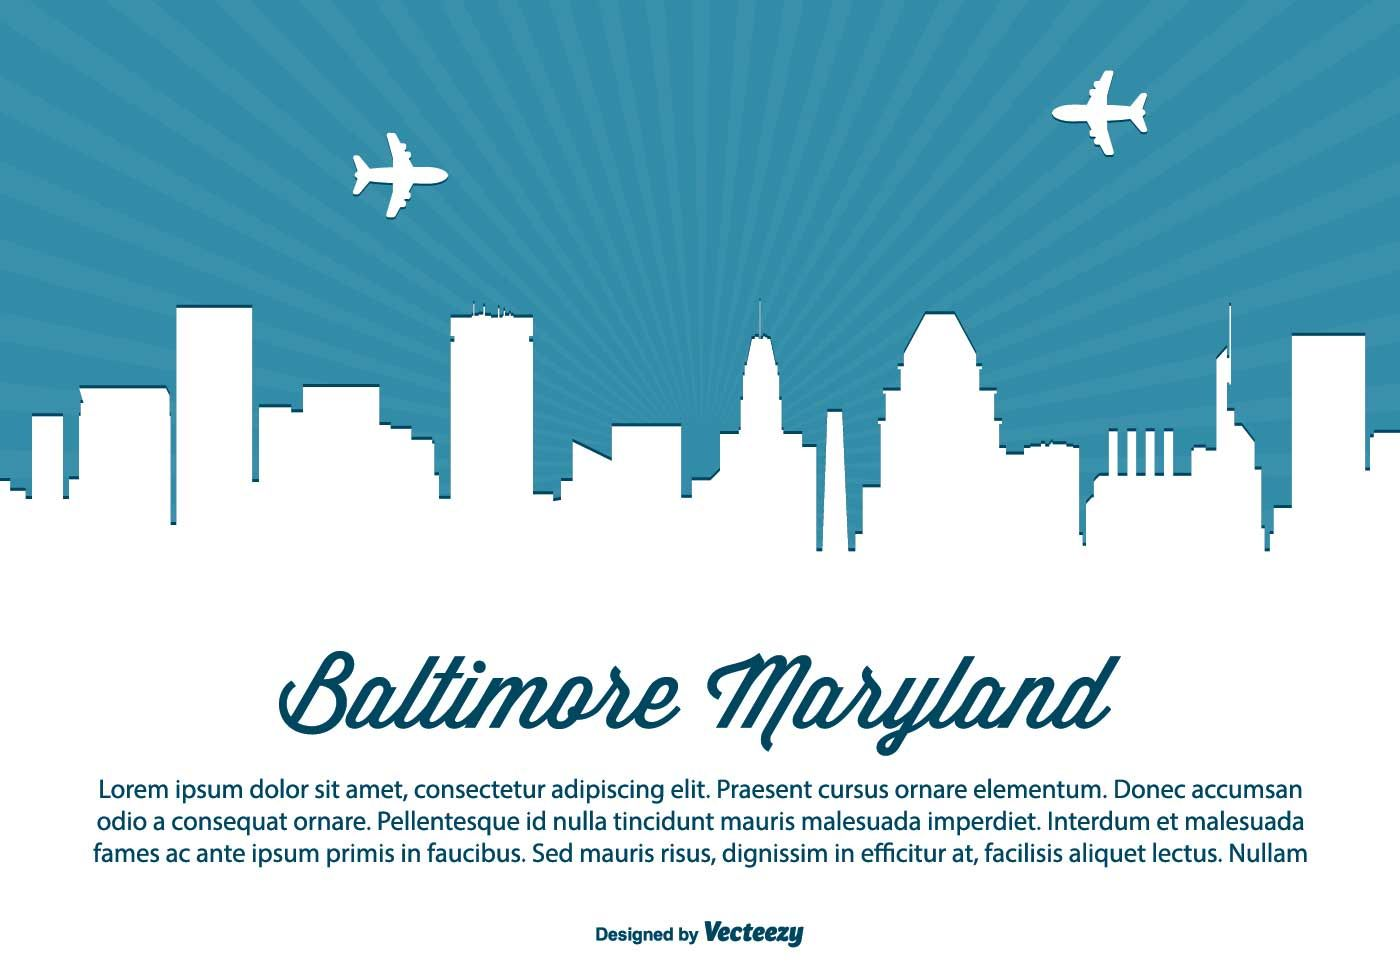 Baltimore skyline clipart graphic freeuse Baltimore Maryland Skyline Illustration | Baltimore Skyline ... graphic freeuse